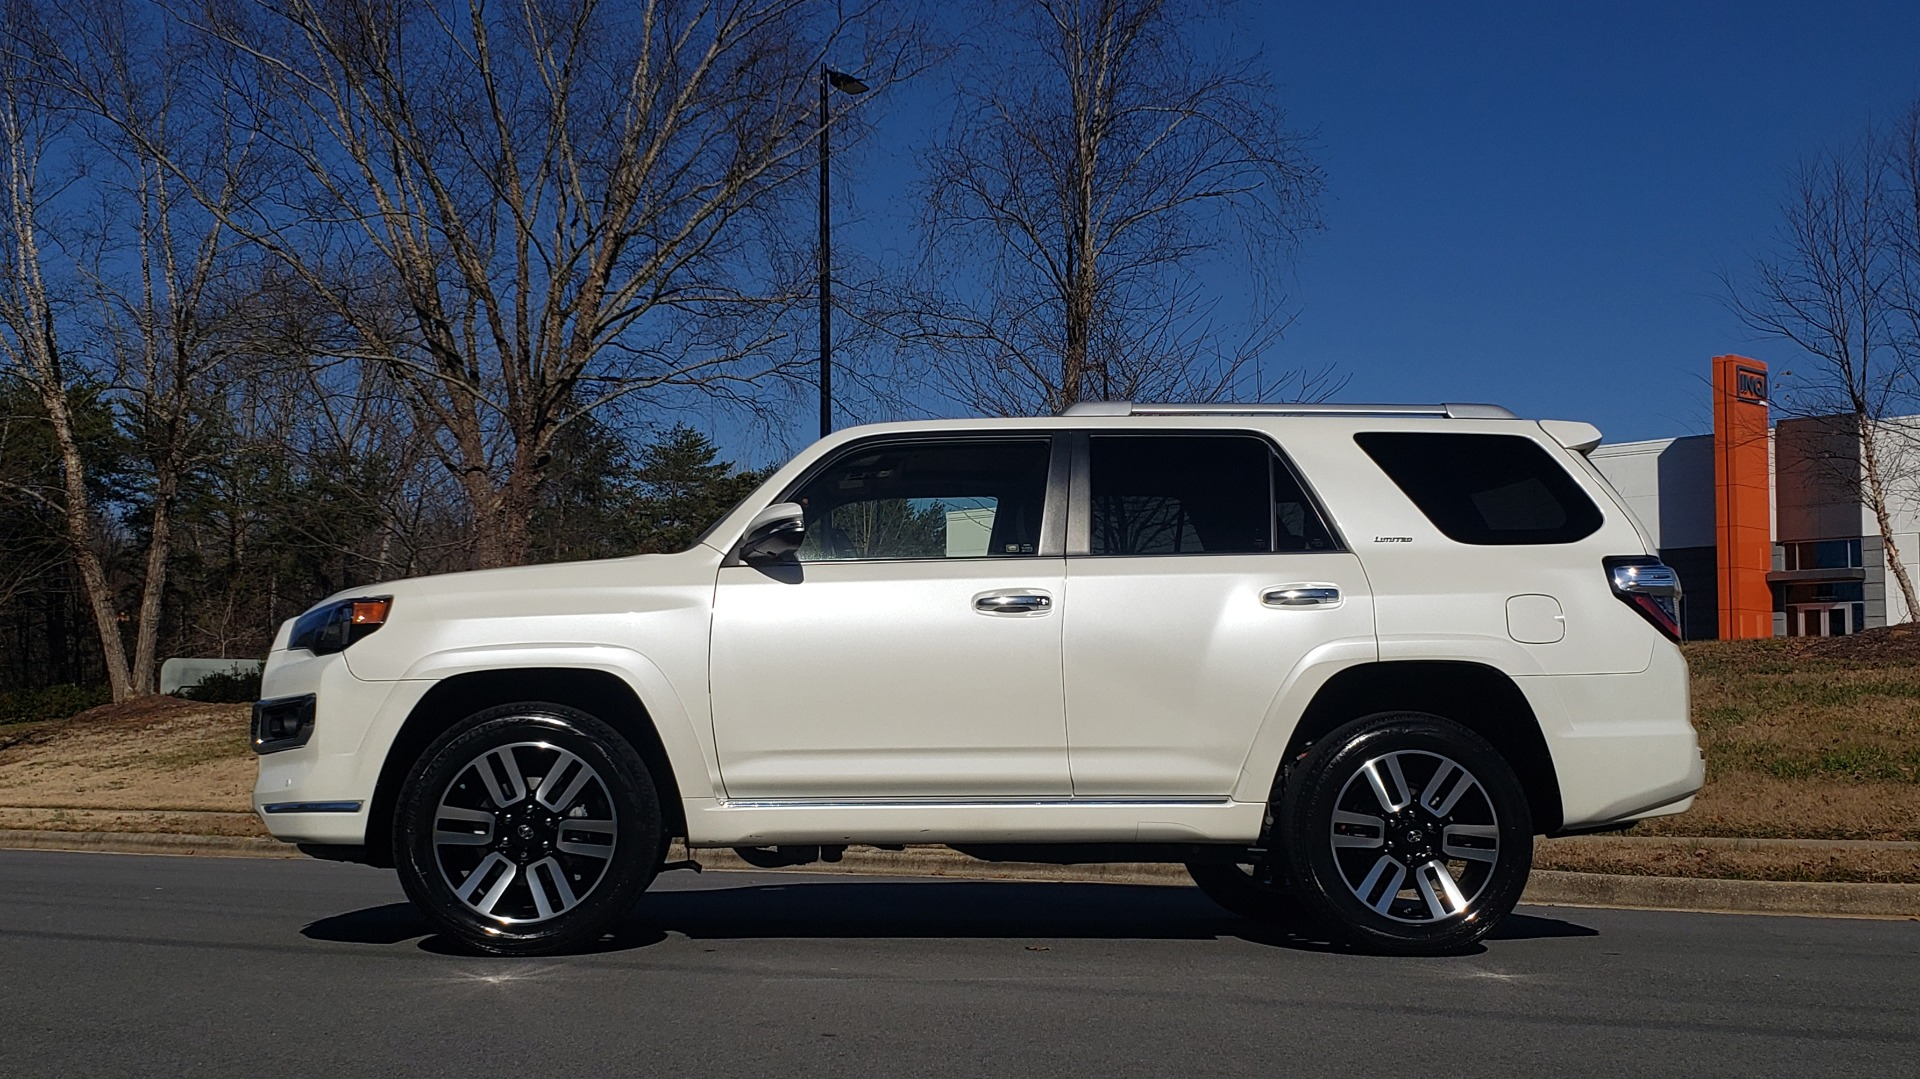 Used 2018 Toyota 4RUNNER LIMITED 4X4 / 4.0L V6 / AUTO / NAV / SUNROOF / JBL AUDIO / REARVIEW for sale Sold at Formula Imports in Charlotte NC 28227 2